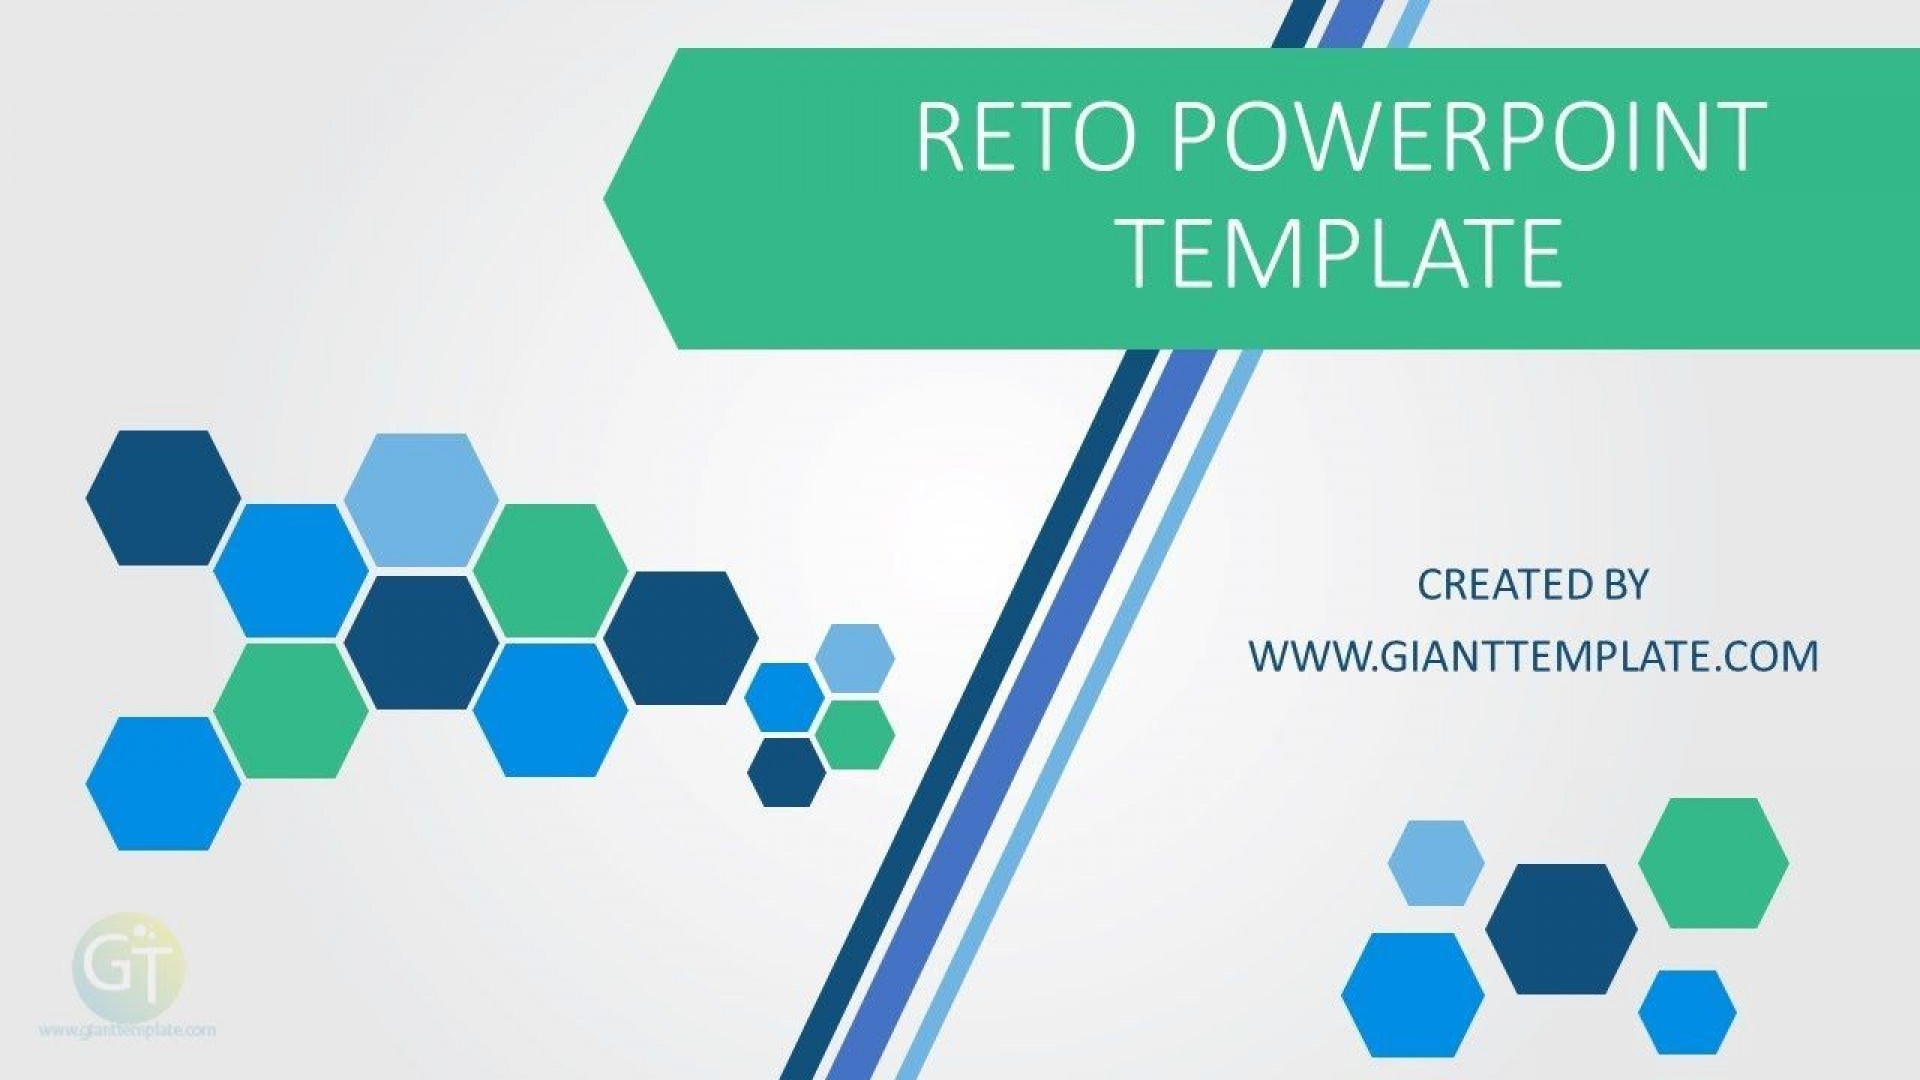 002 Marvelou Free Download Ppt Template For Technical Presentation Highest Clarity  Simple Project Sample1920